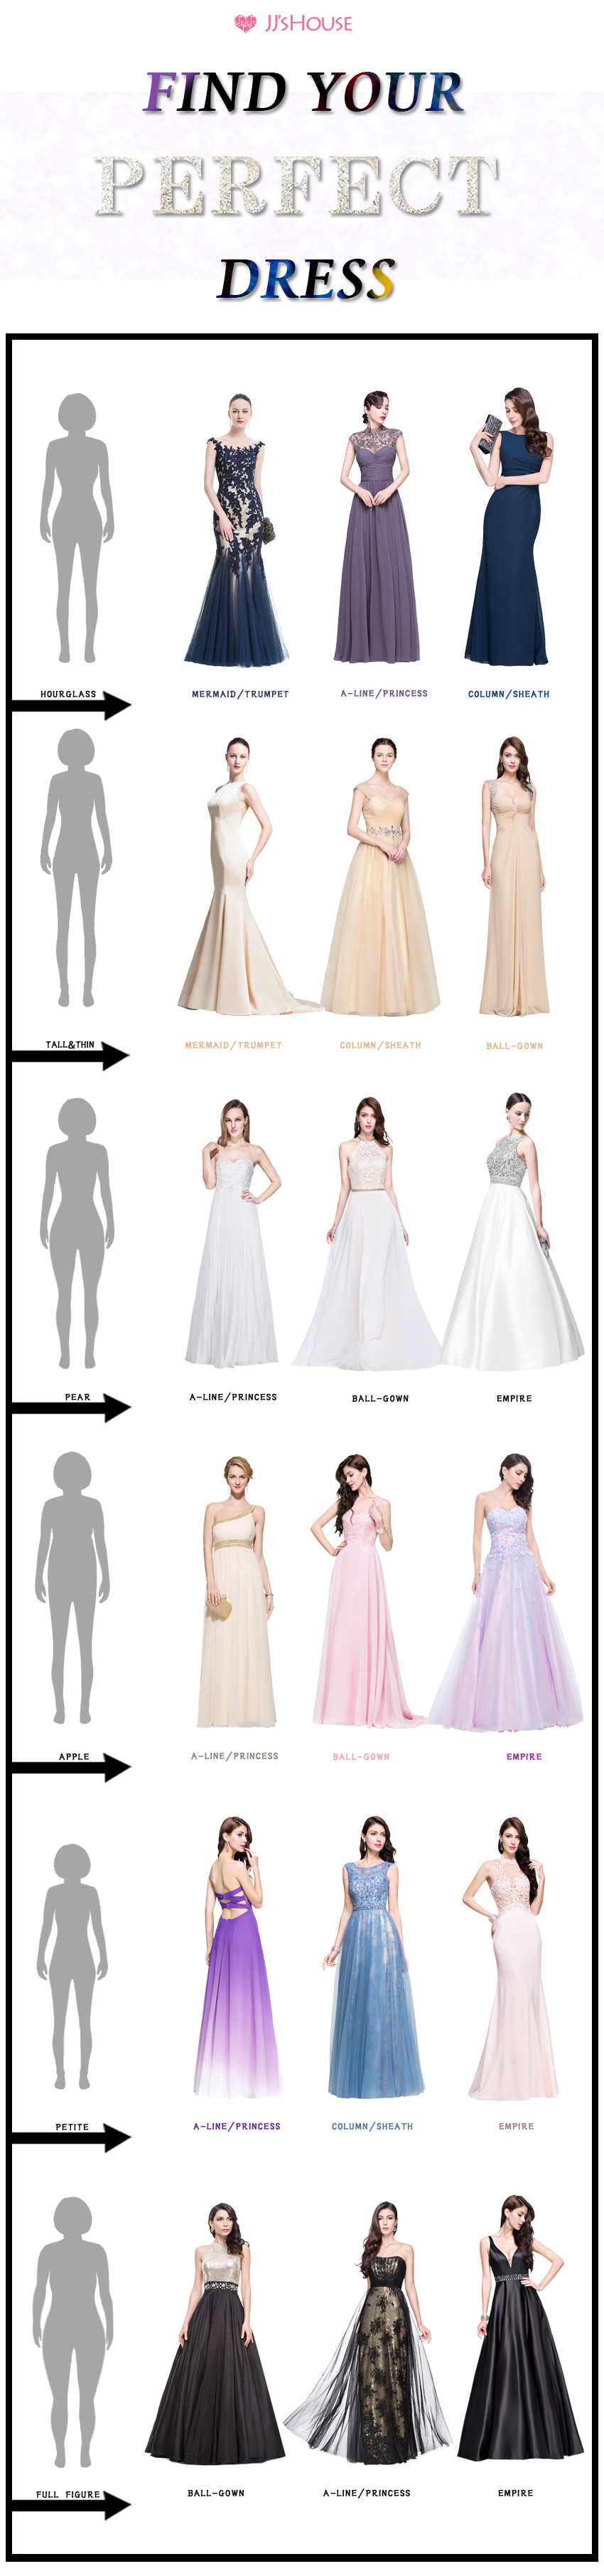 Find The Perfect Dress For Your Body Shape Choosing The Best Dress